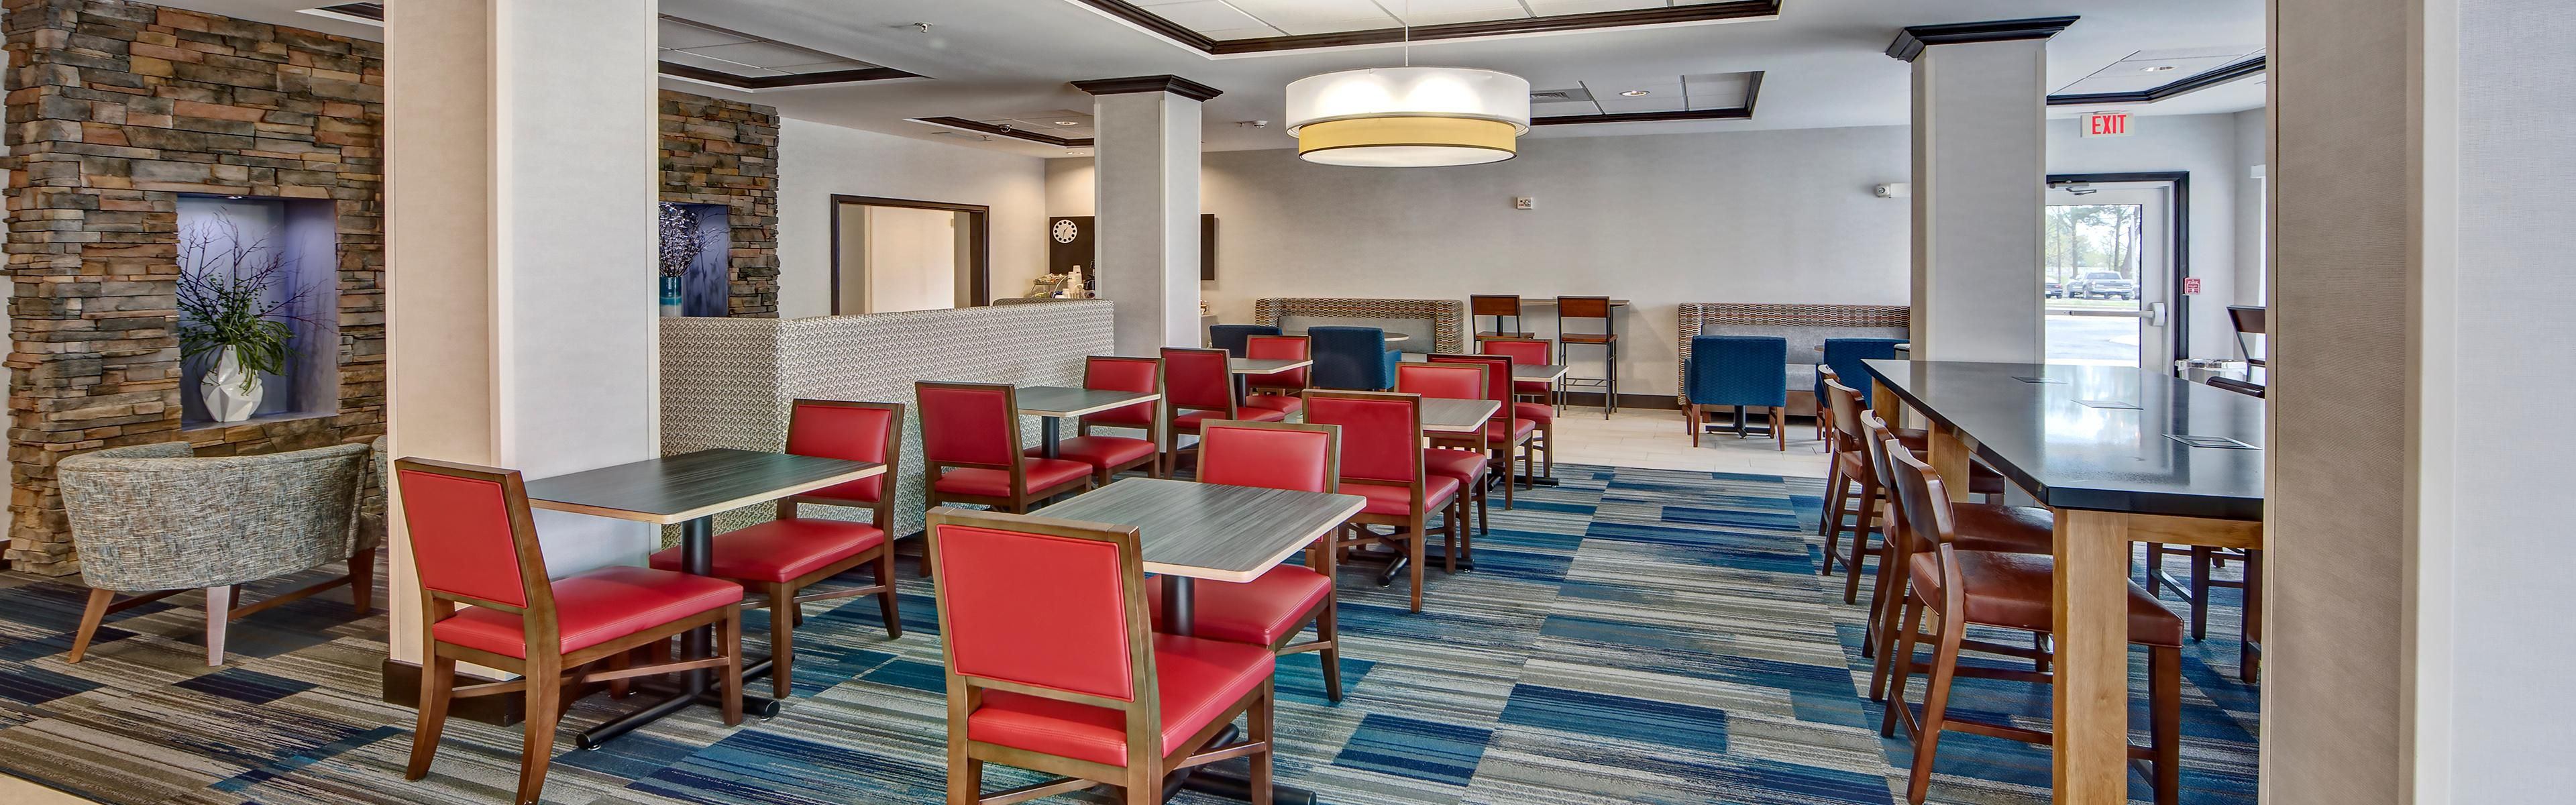 Holiday Inn Express & Suites Cookeville image 3